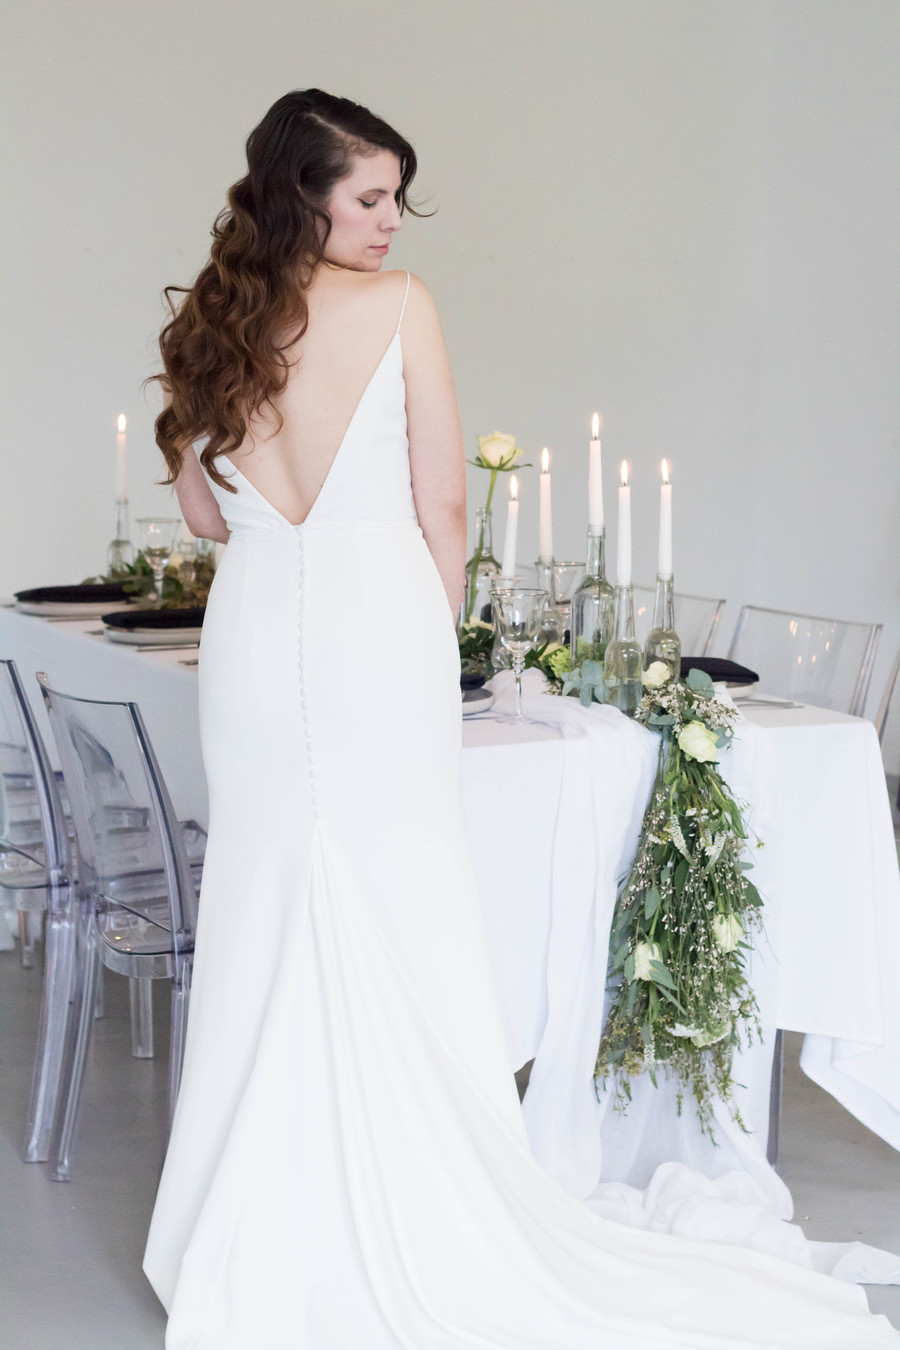 Sleek and modern wedding inspiration from Wakefield with Lam D Peretti Photography (17)